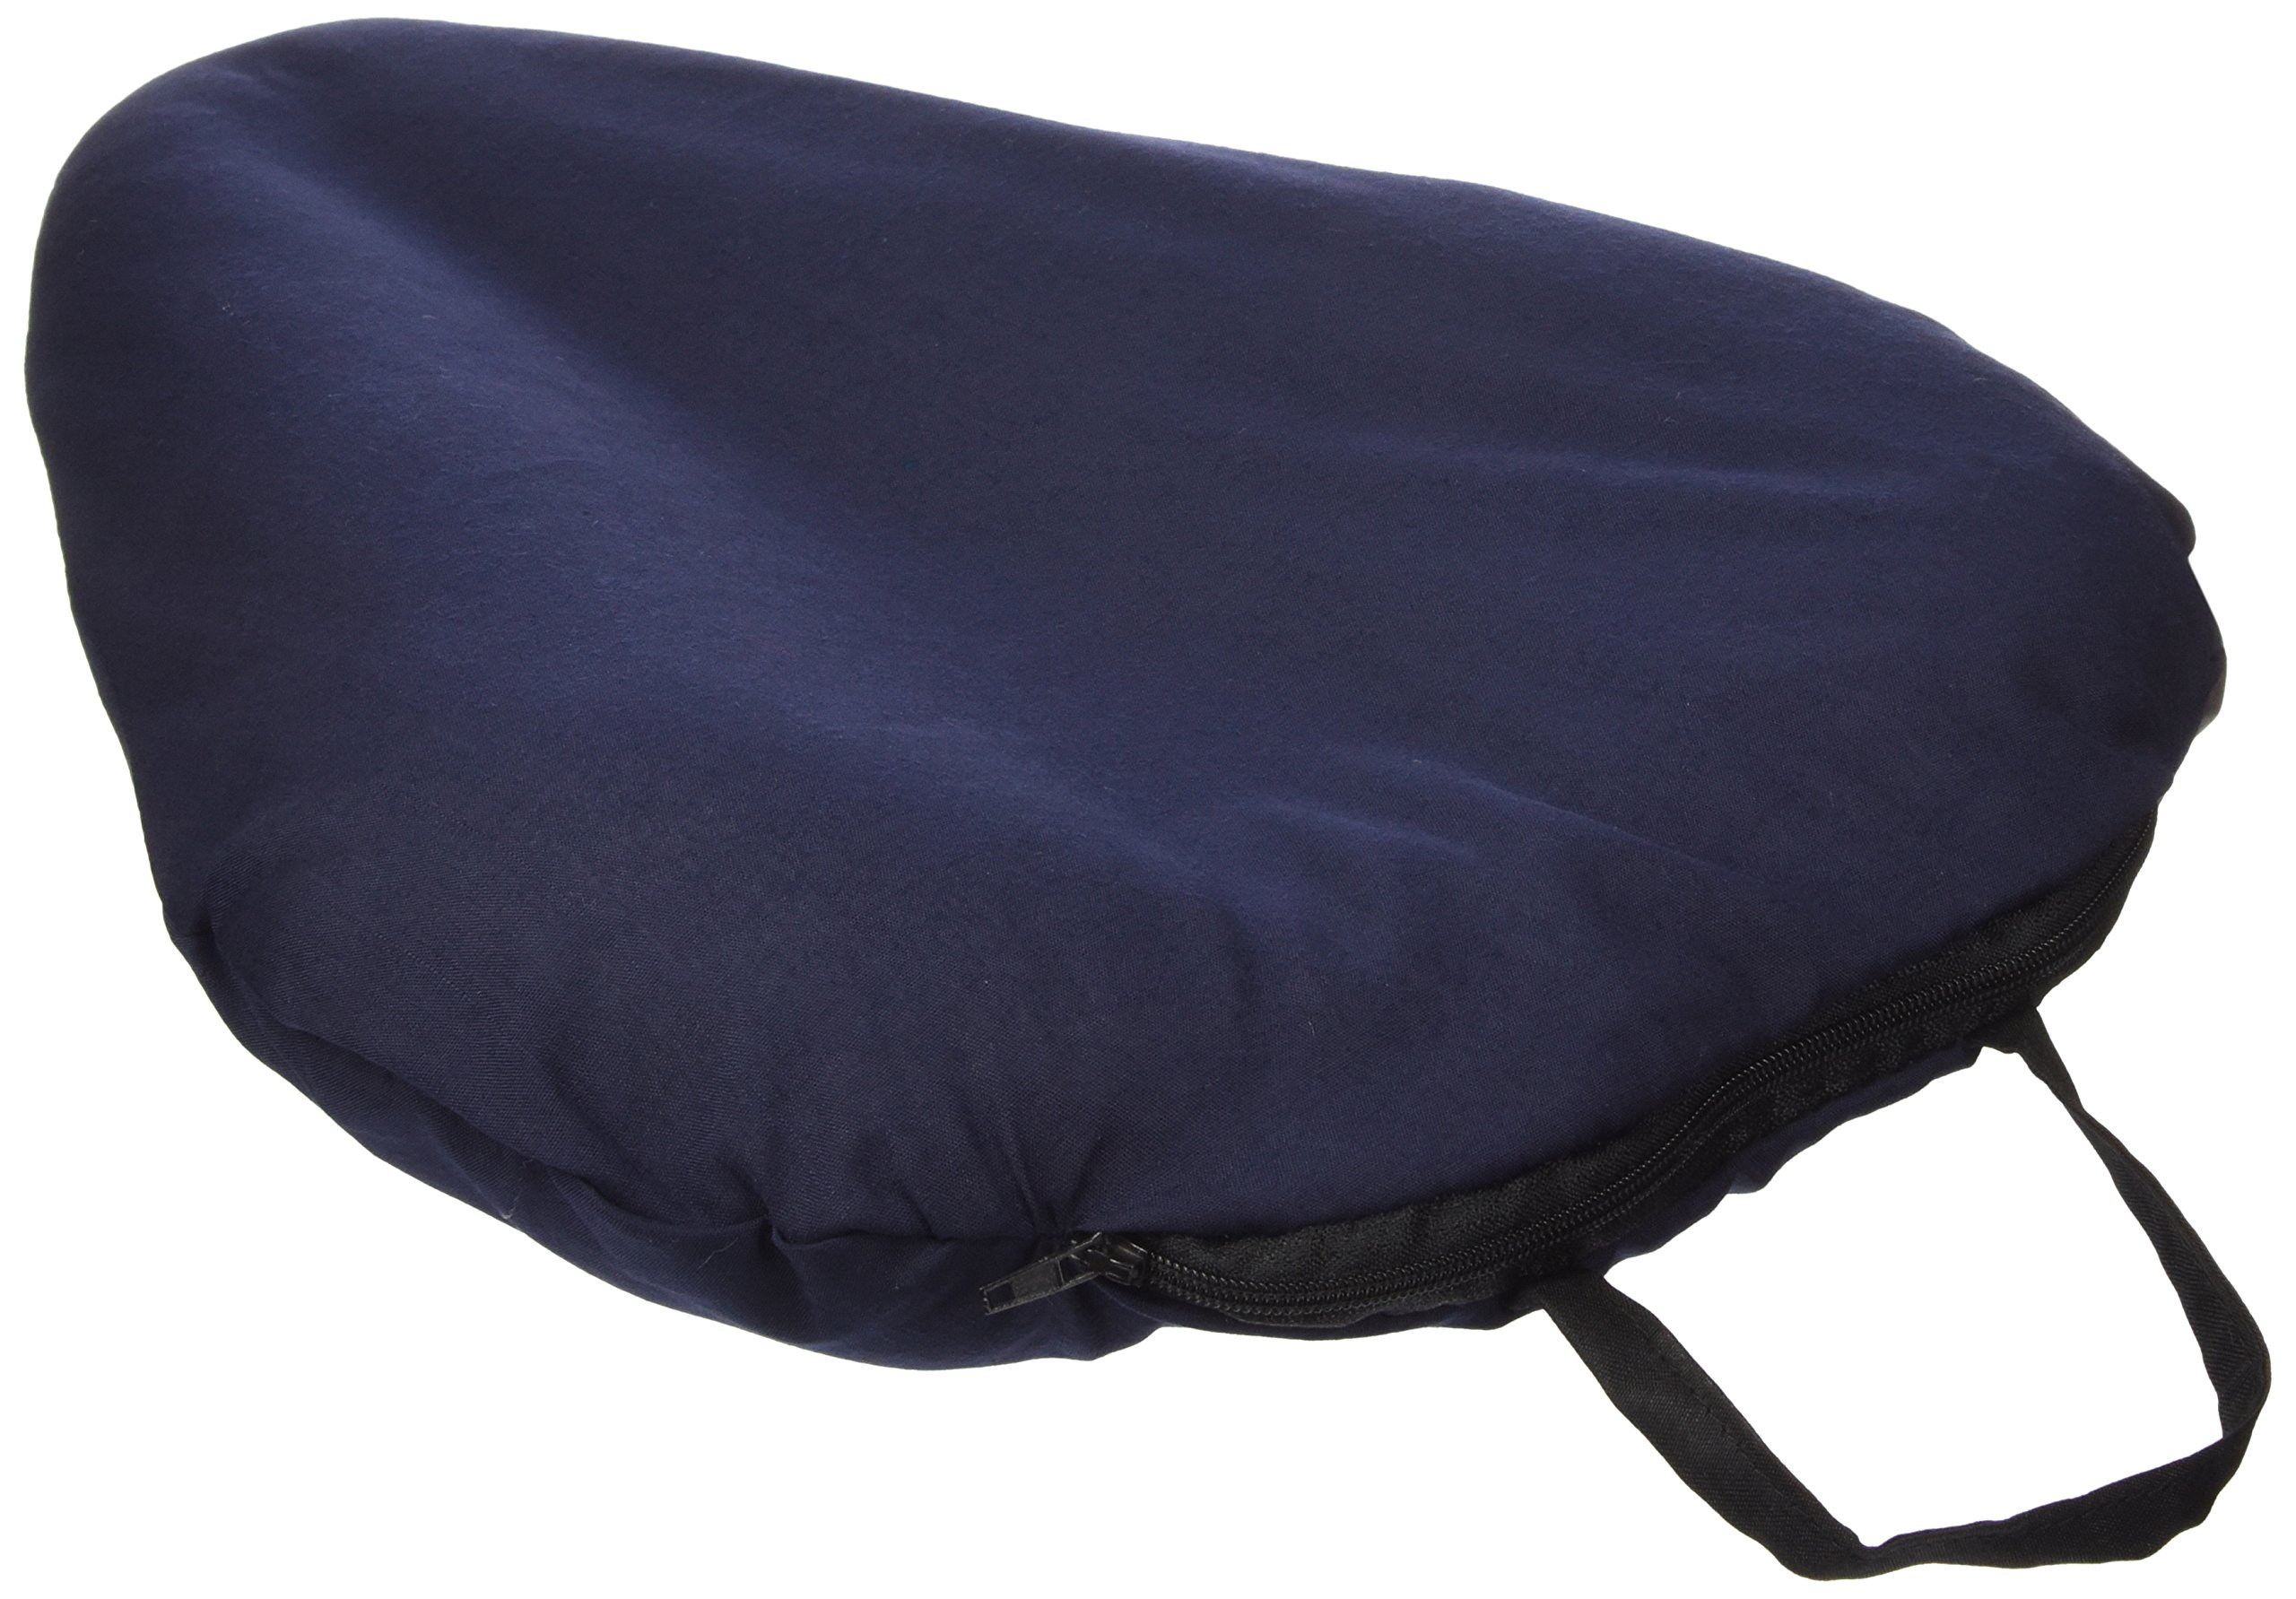 Therapeutic Sciatica Pillow to relieve back and leg pain